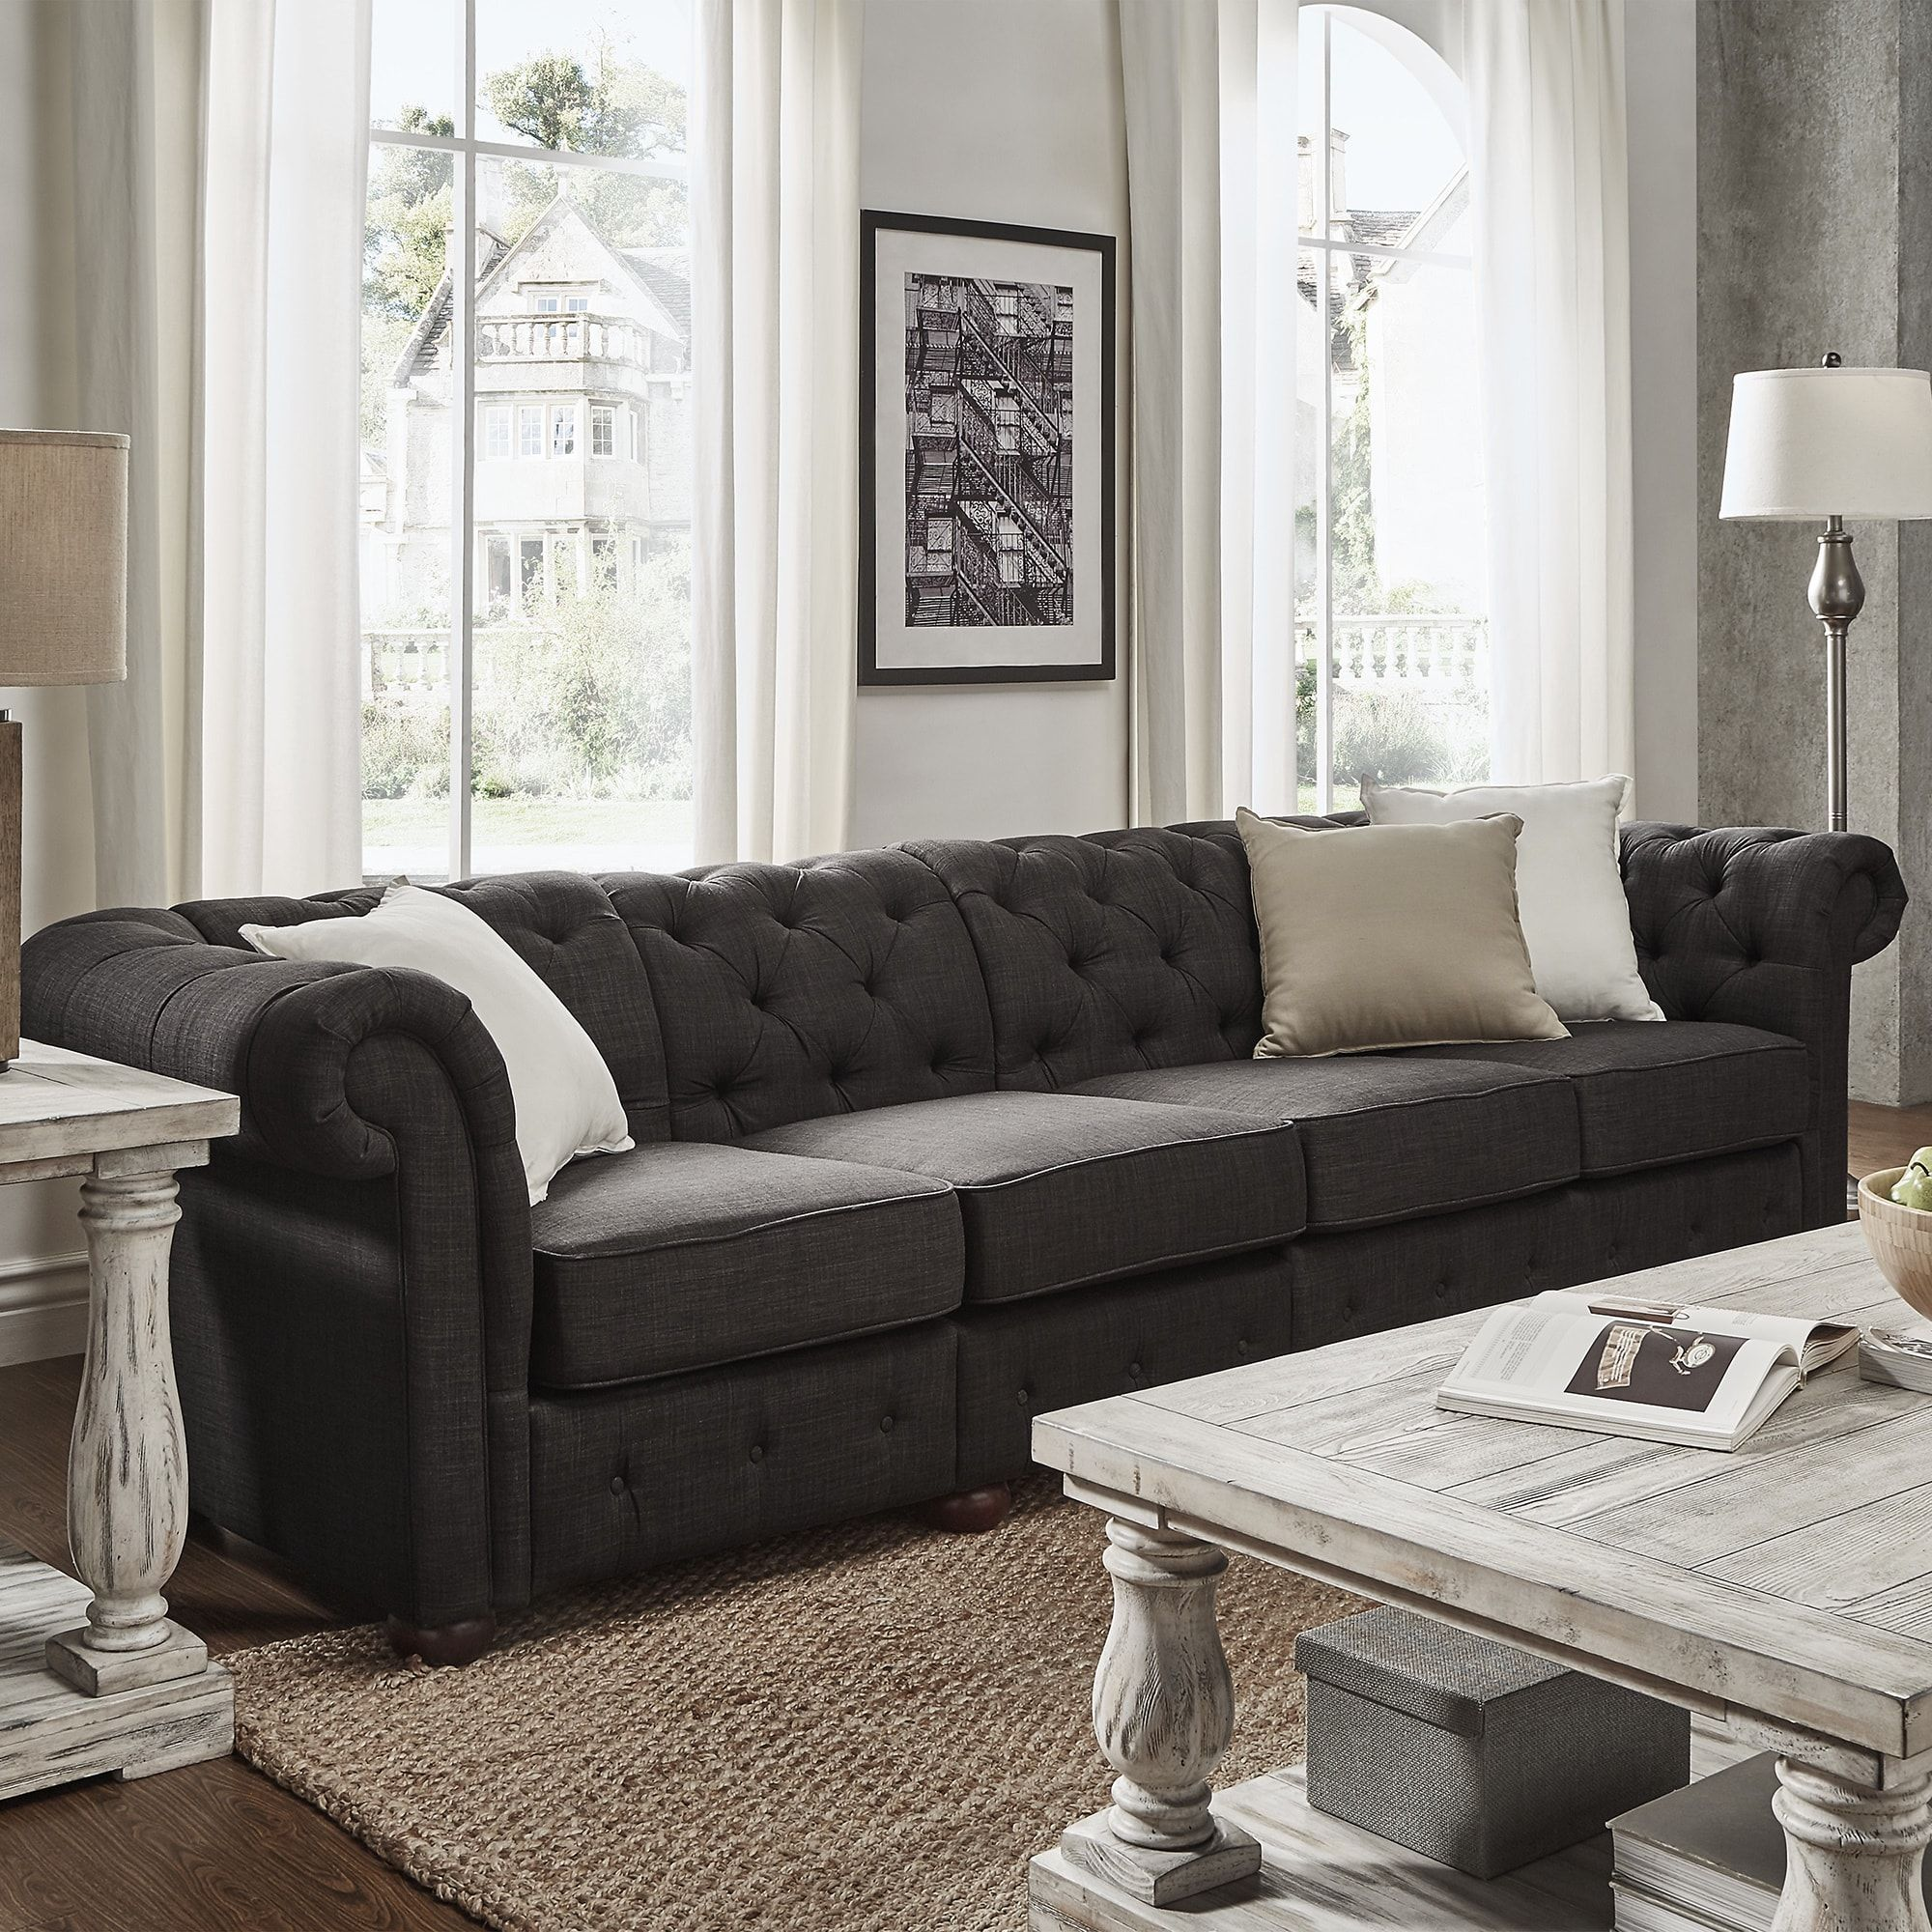 tribecca home knightsbridge beige linen tufted scroll arm chesterfield sofa stretch to fit covers baci living room